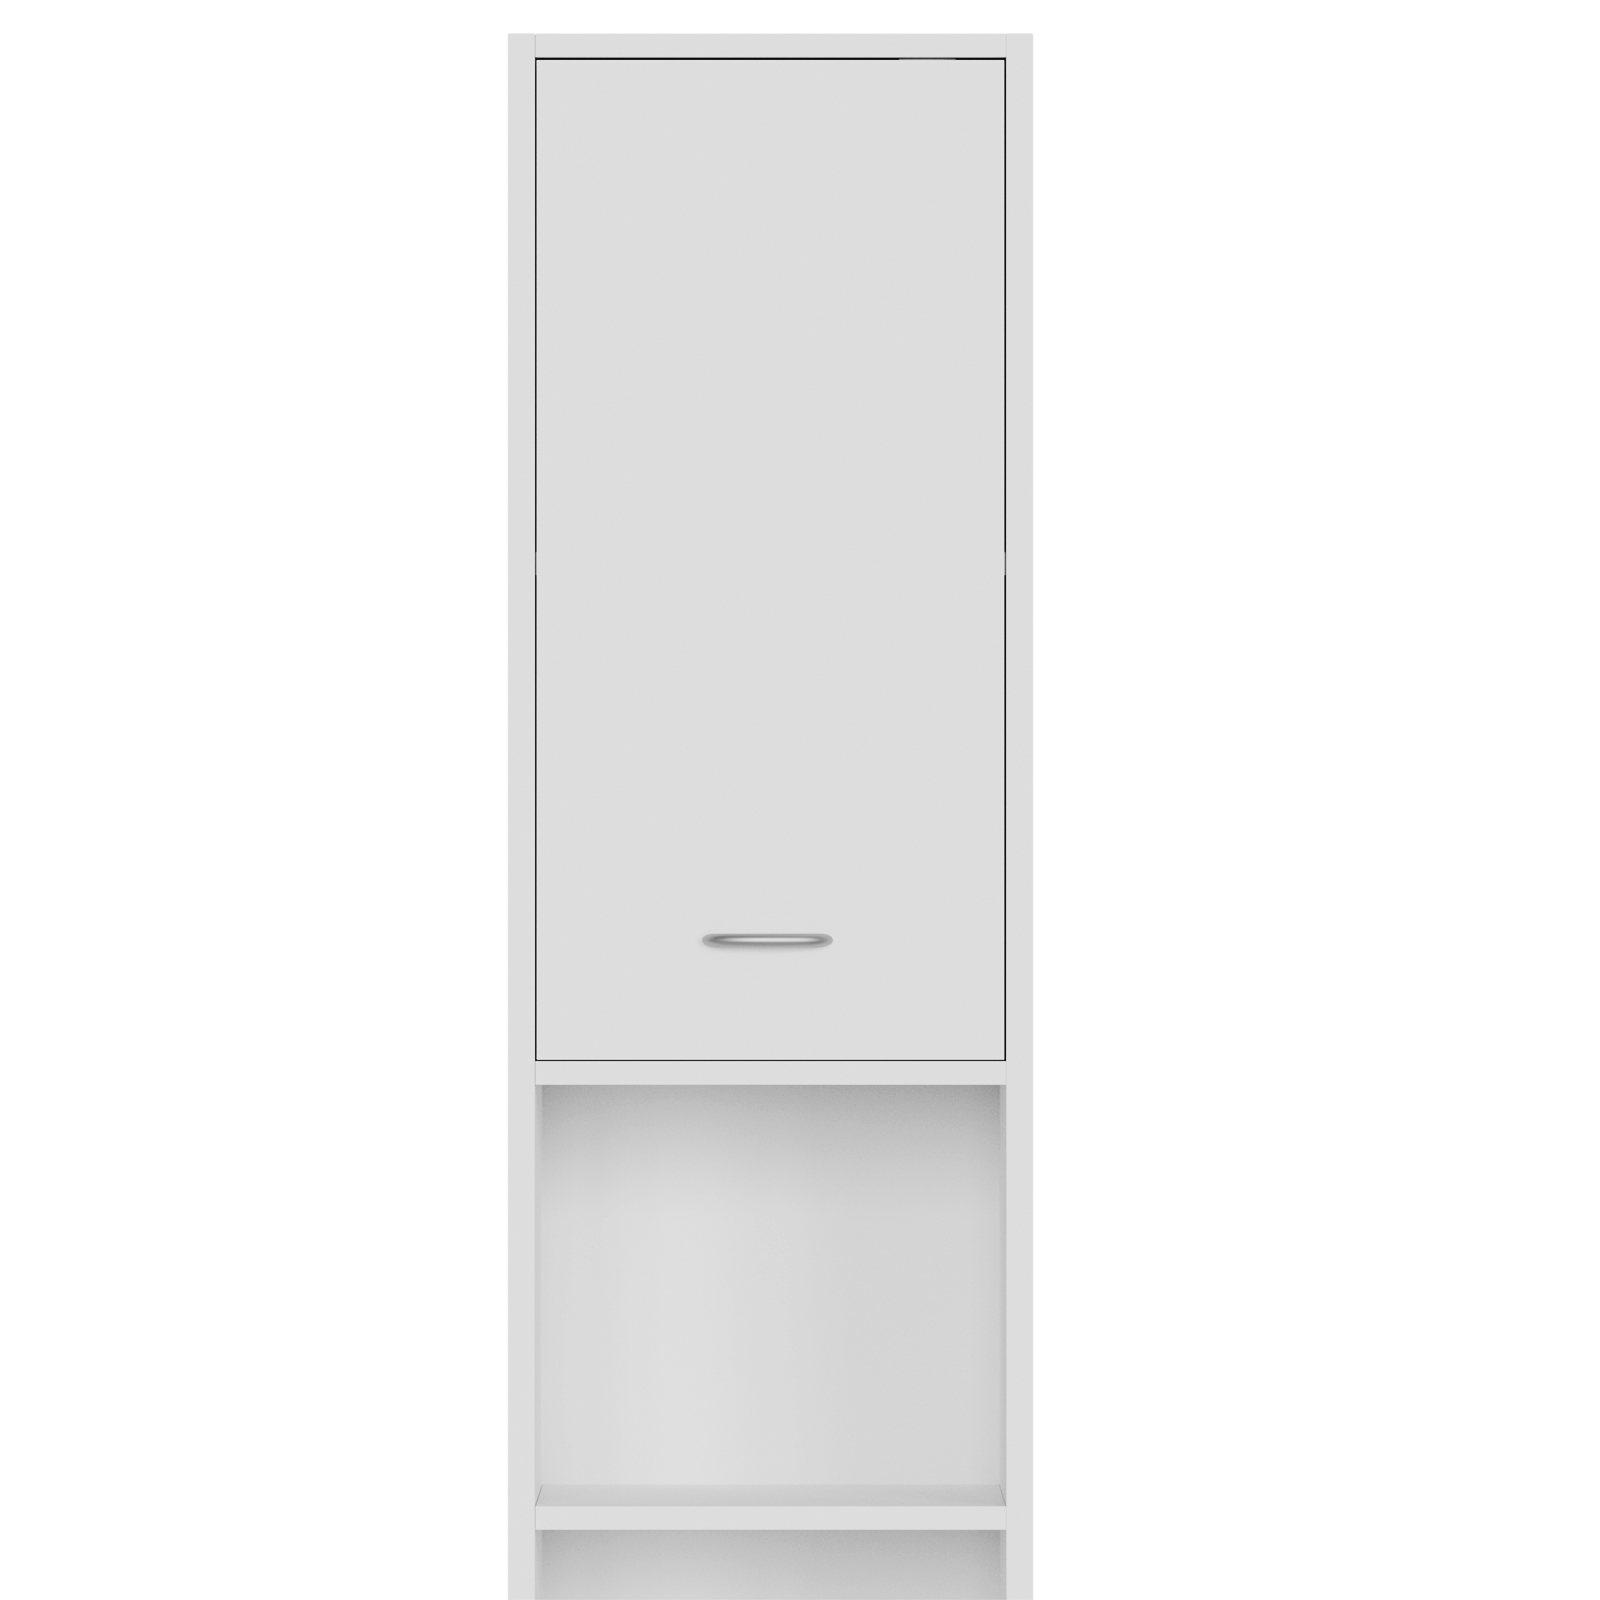 meuble salle de bain blanc armoire colonne tag re de rangement 185x30 x30 cm ebay. Black Bedroom Furniture Sets. Home Design Ideas